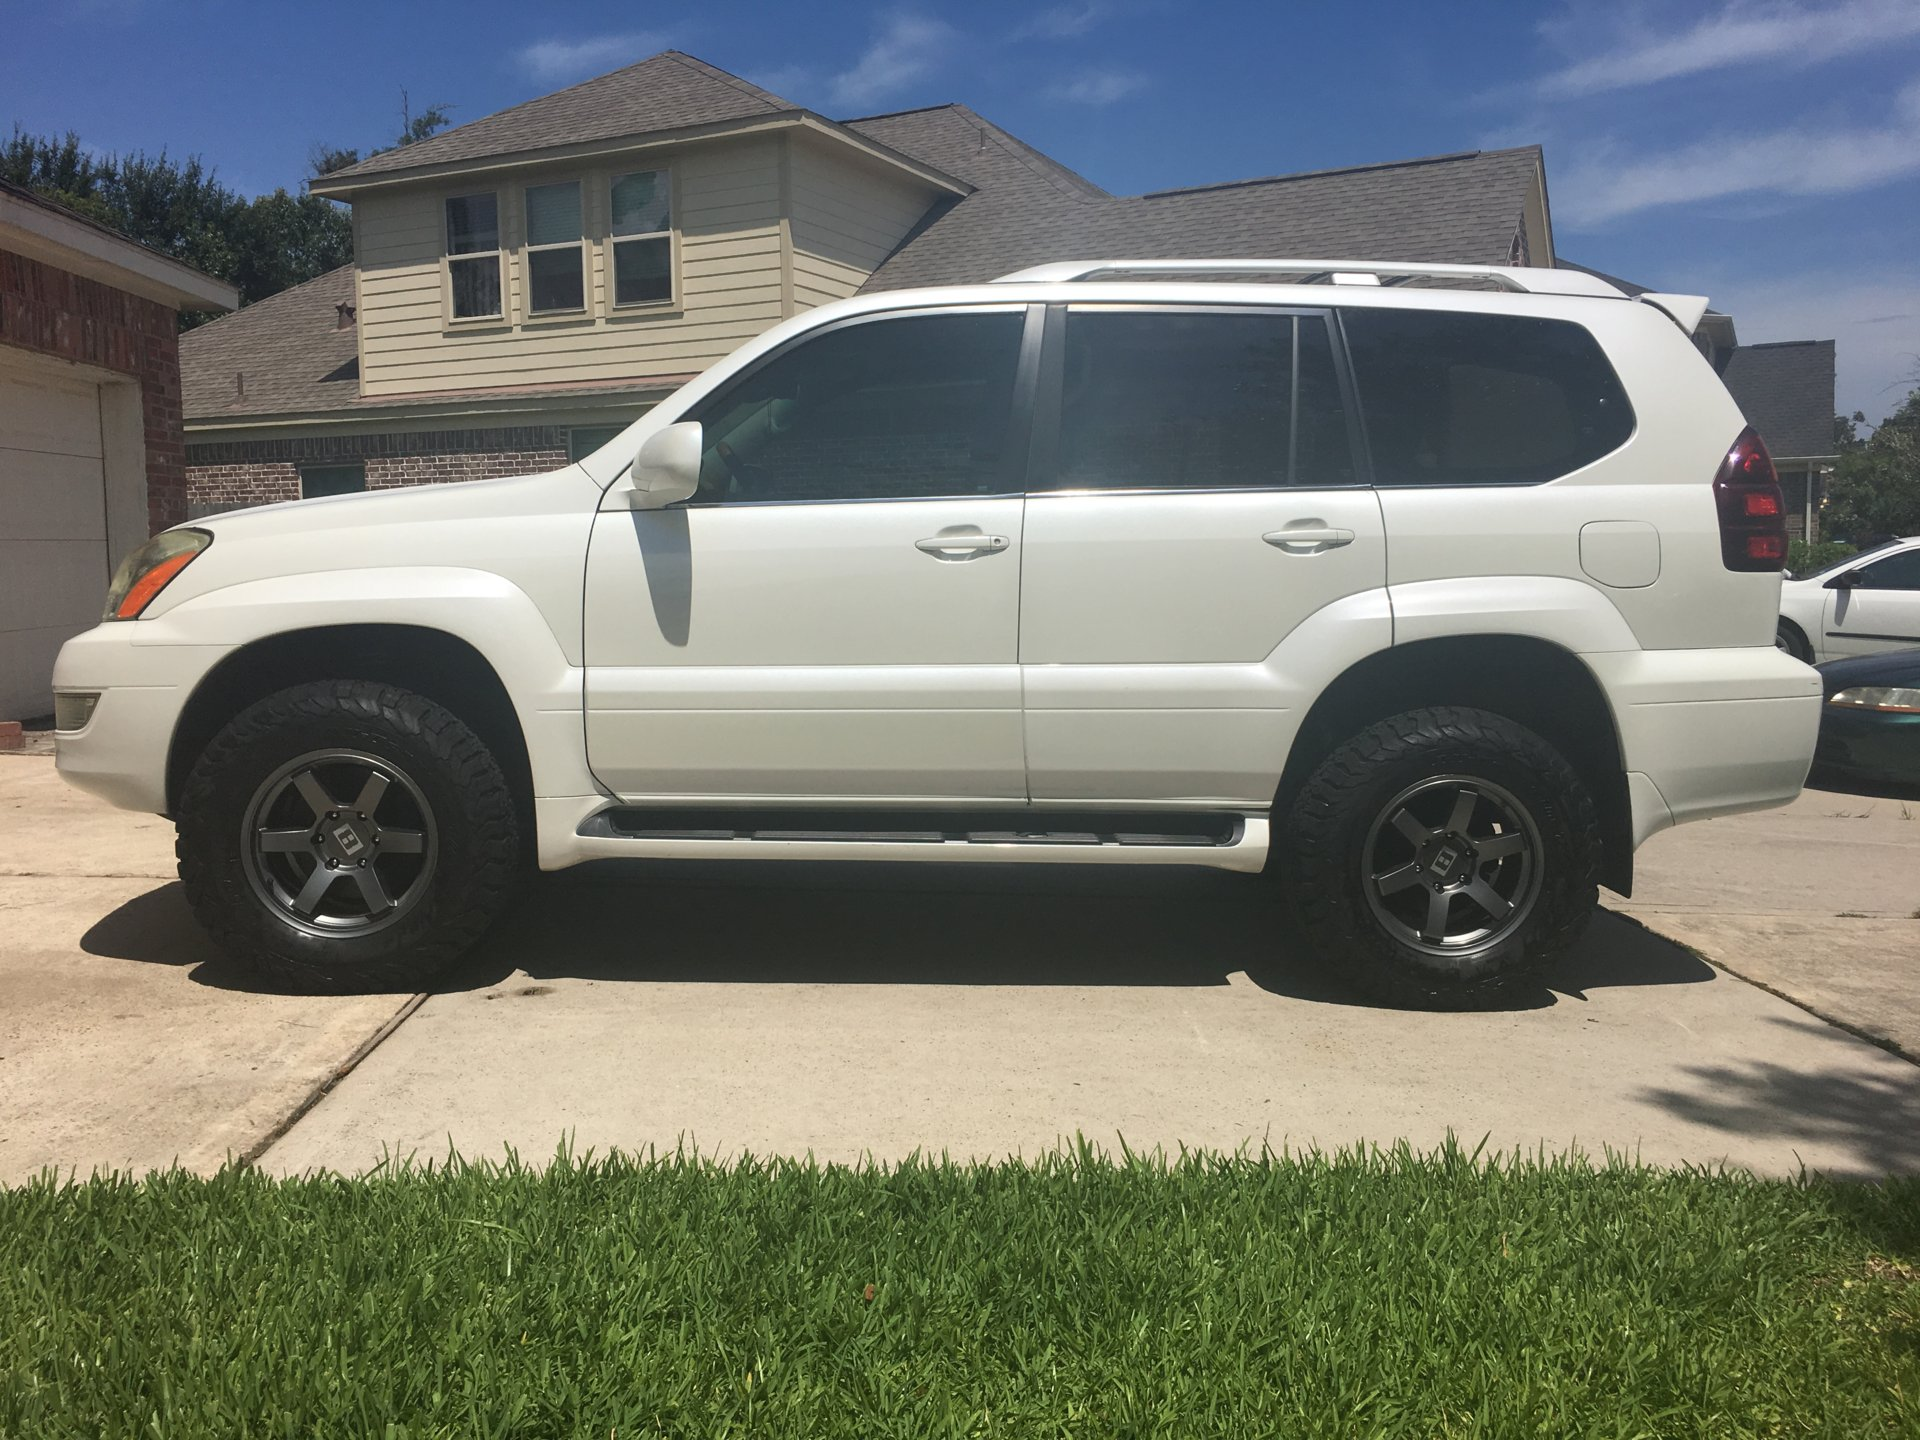 for sale 2006 gx470 lifted 103k ih8mud forum. Black Bedroom Furniture Sets. Home Design Ideas